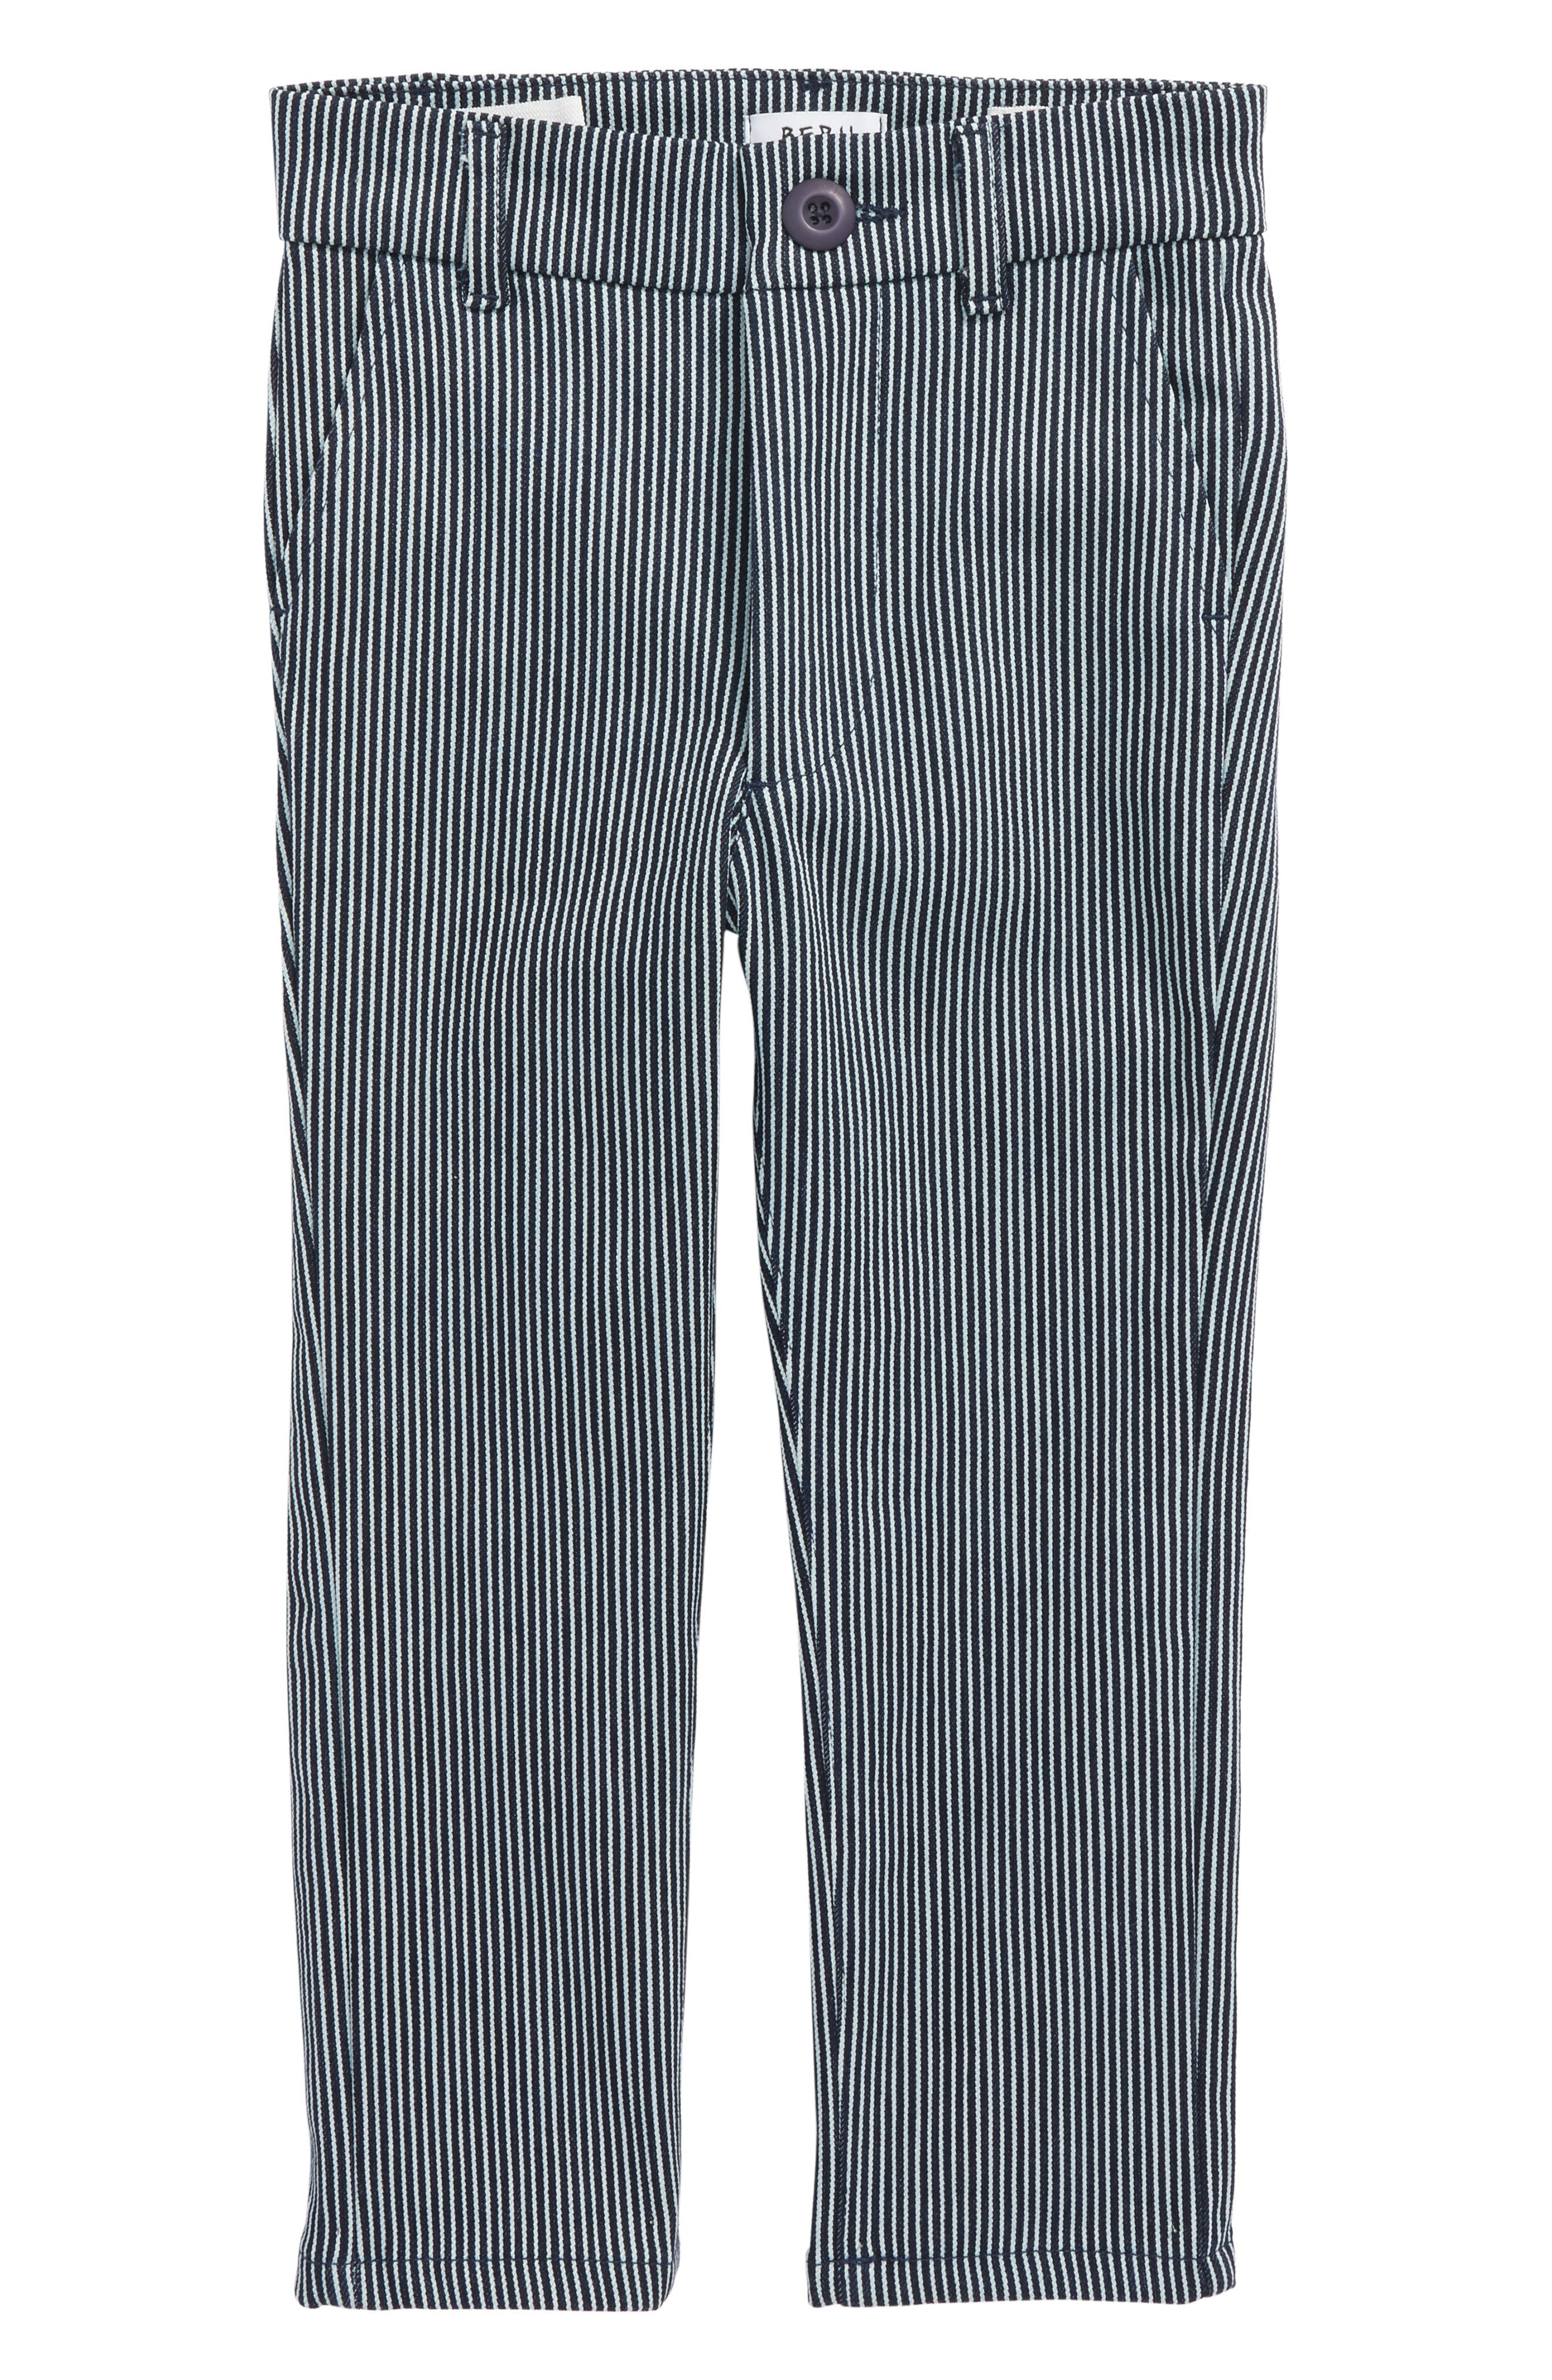 Alternate Image 1 Selected - Beru Cameron Stripe Woven Pants (Toddler Boys & Little Boys)